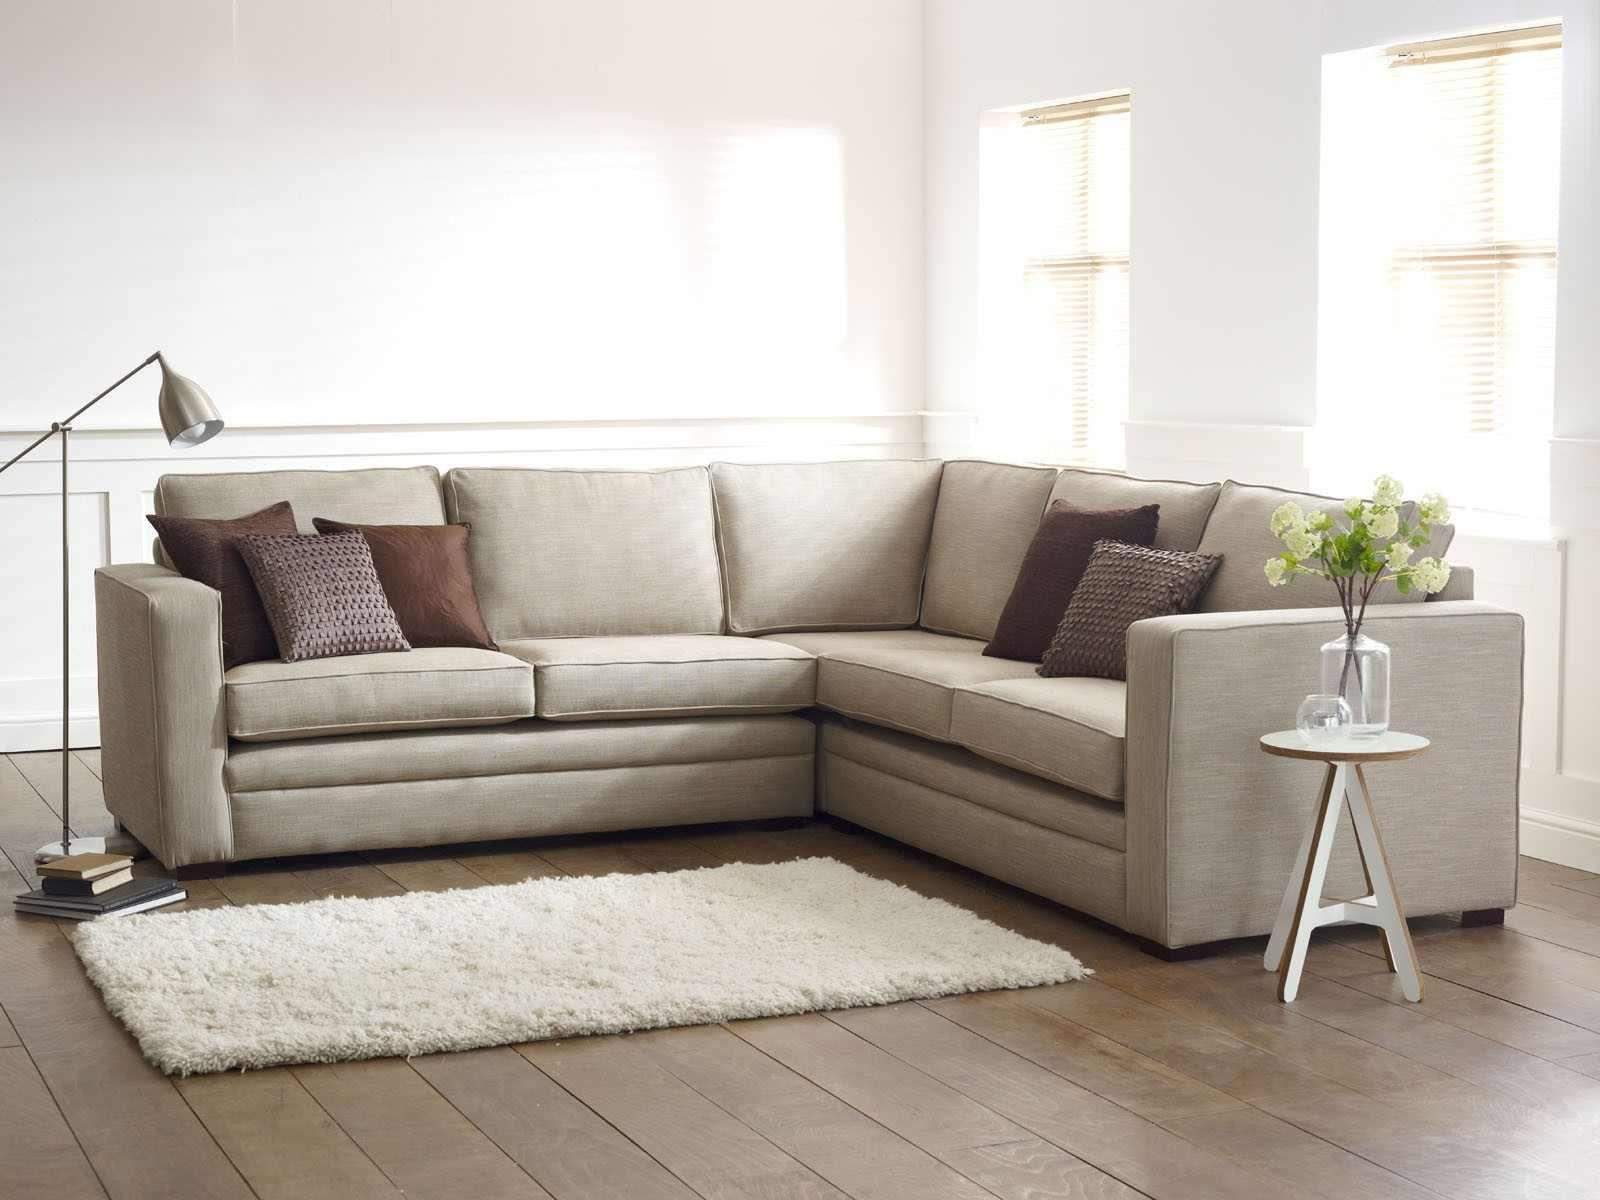 ▻ Sofa : 38 Orange Leather Sectional Sofa With Chaise Lounge Throughout Leather L Shaped Sectional Sofas (View 4 of 20)